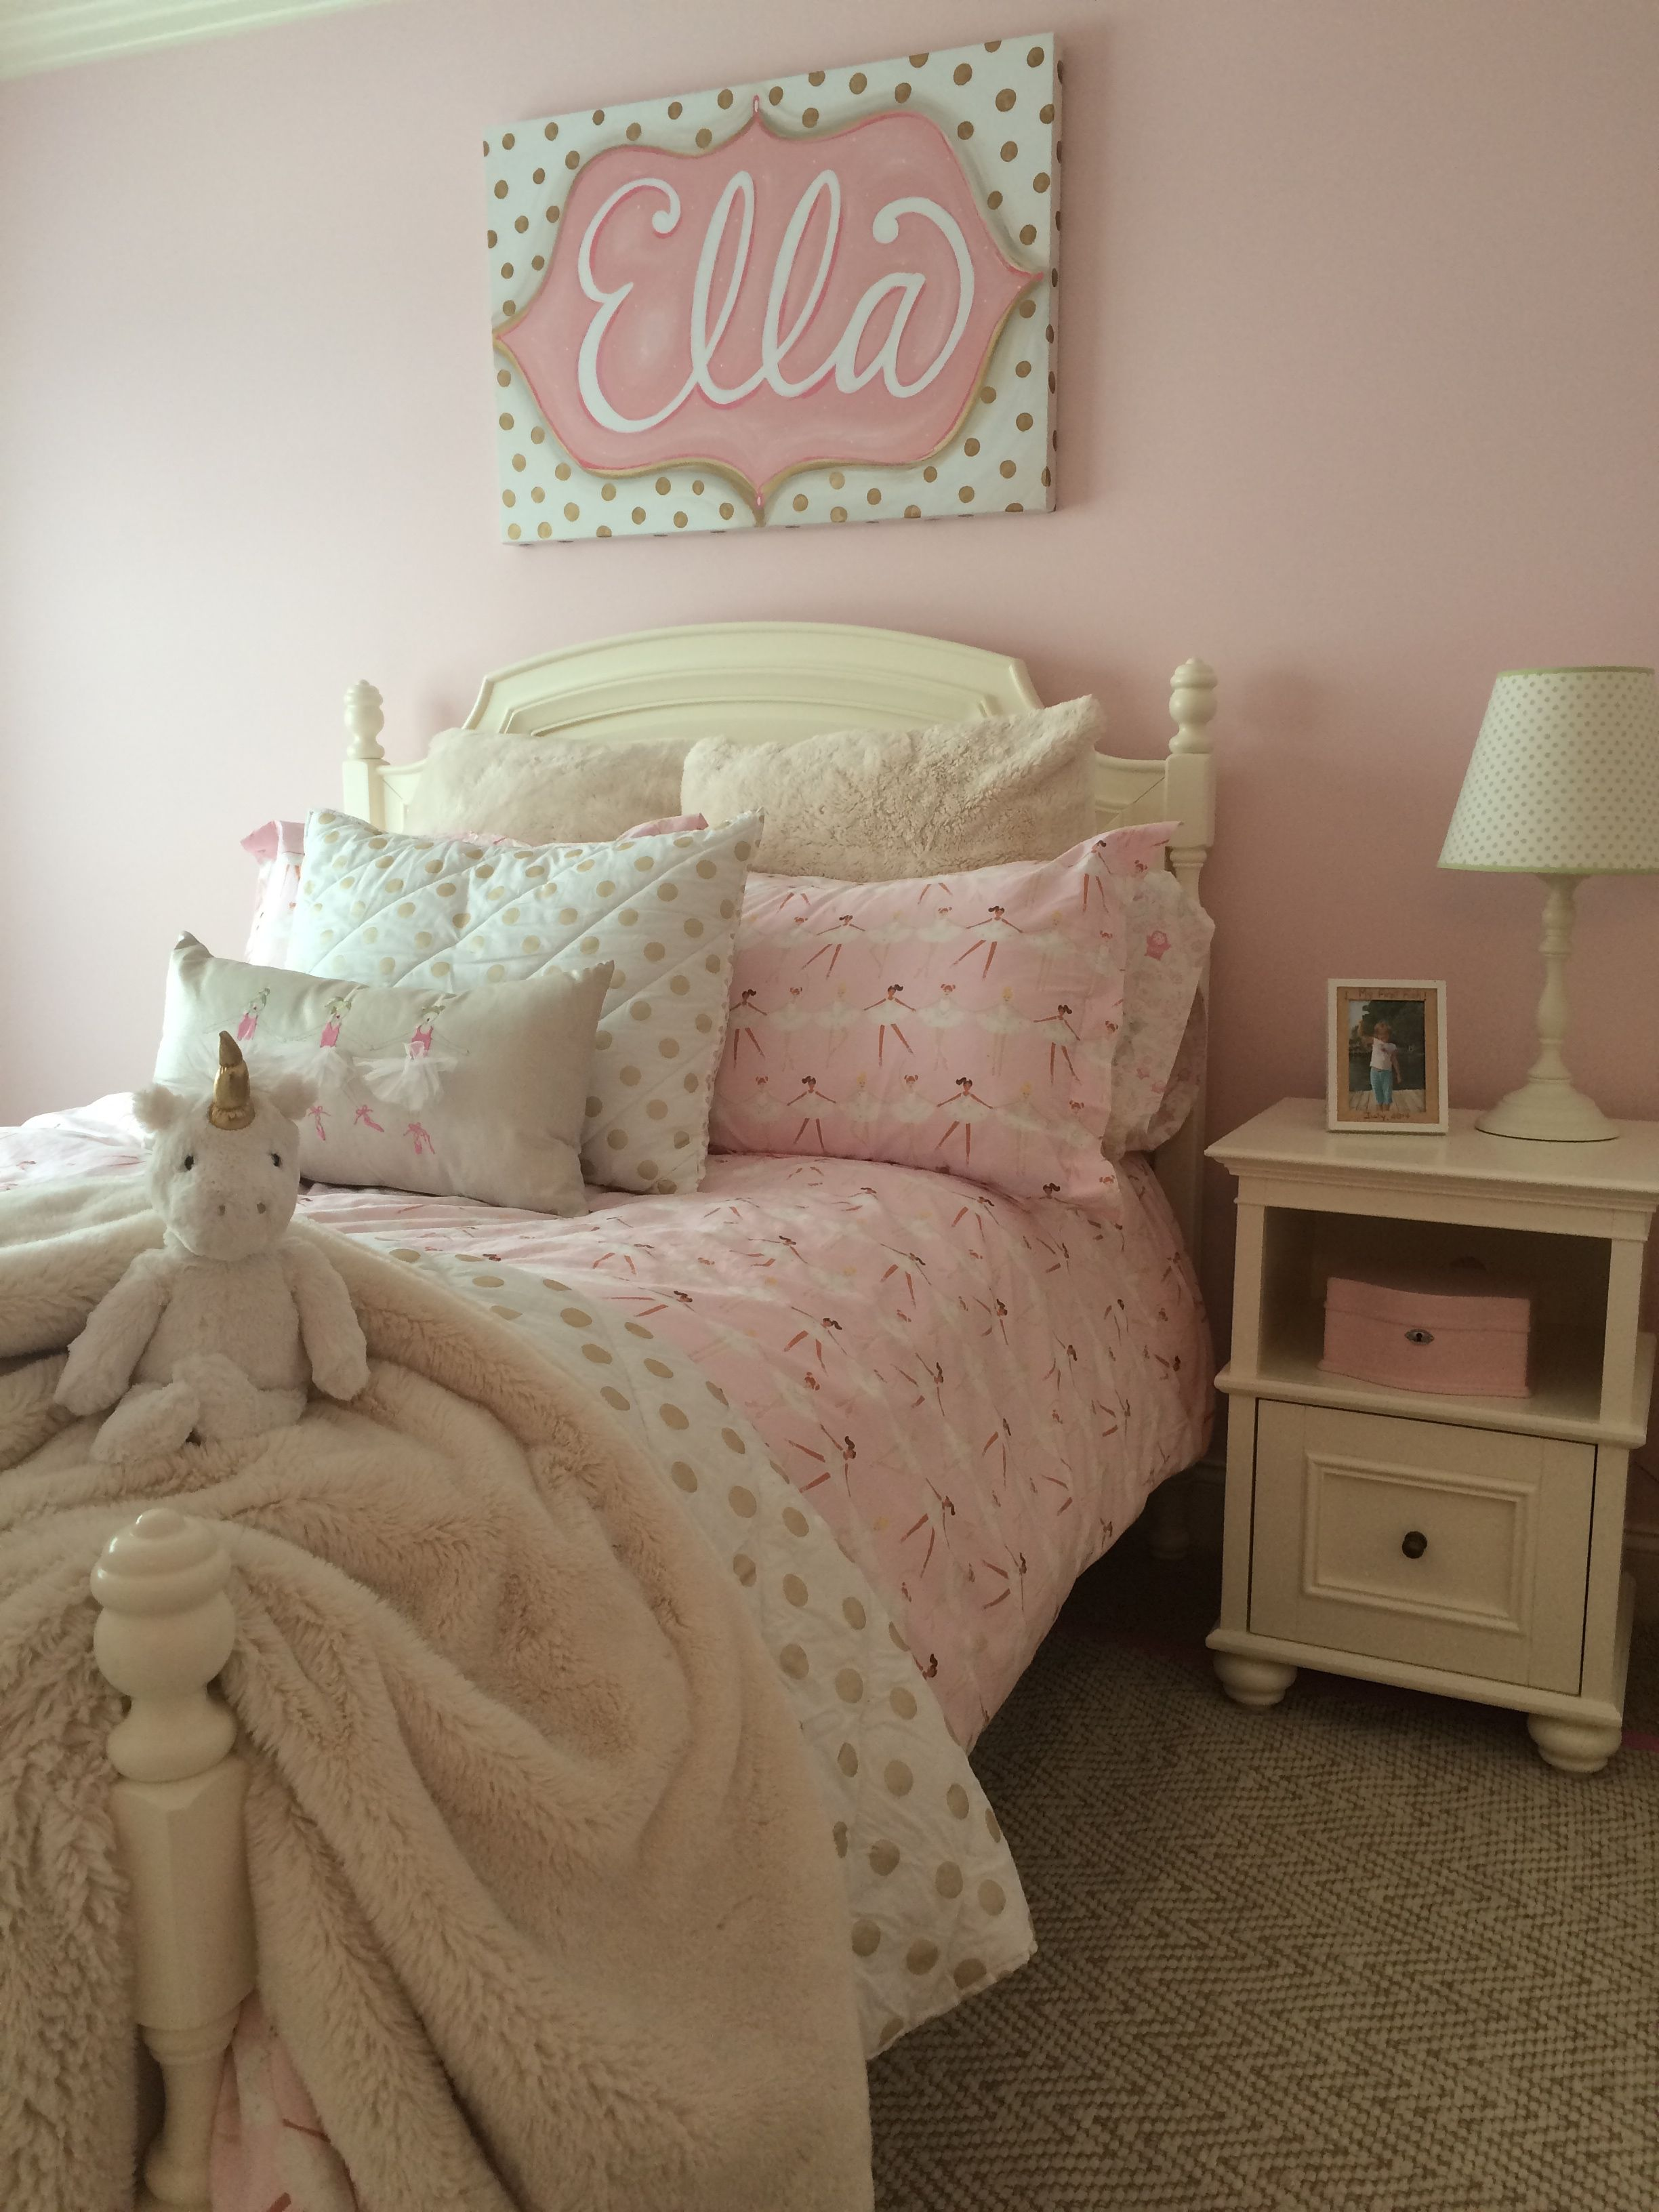 Sweet Ellau0027s Room. A Magical Girly Girl Room With Ballerina, Gold Polka Dot  And